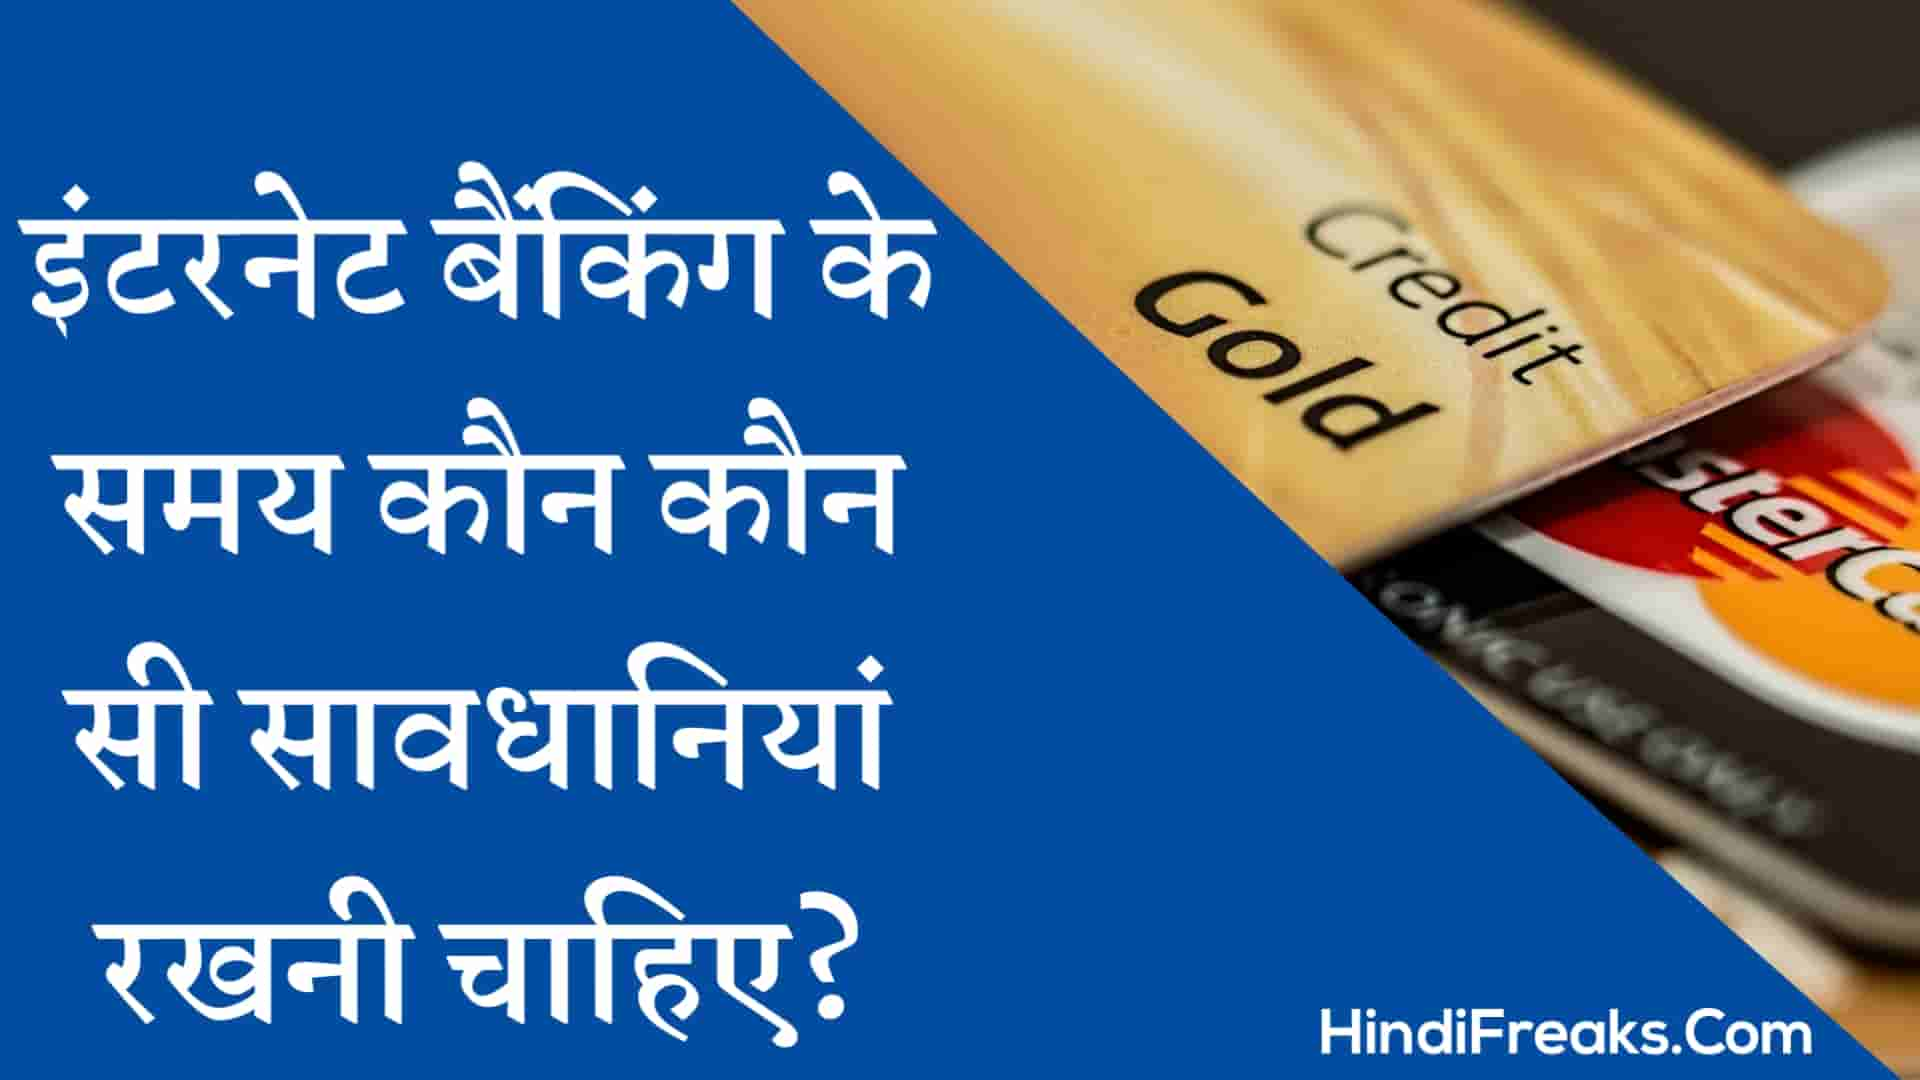 Internet Banking Safety Tips in Hindi